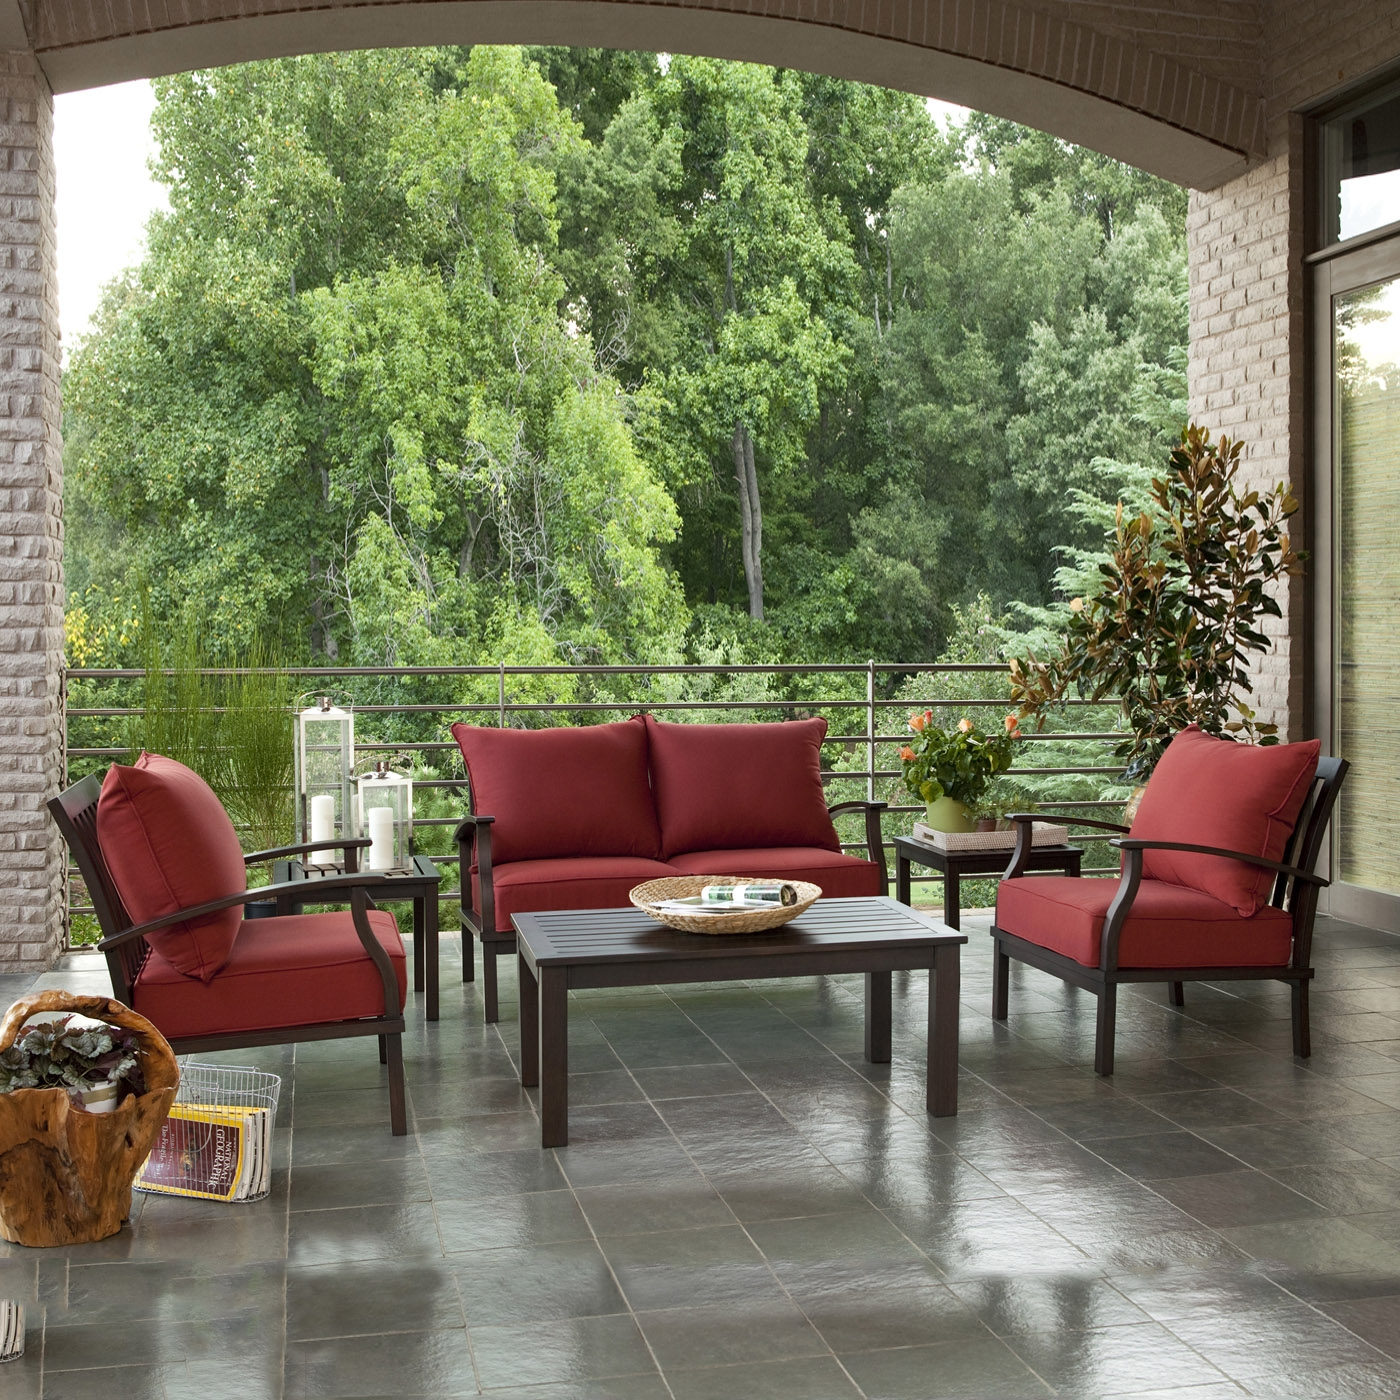 allen roth patio furniture product